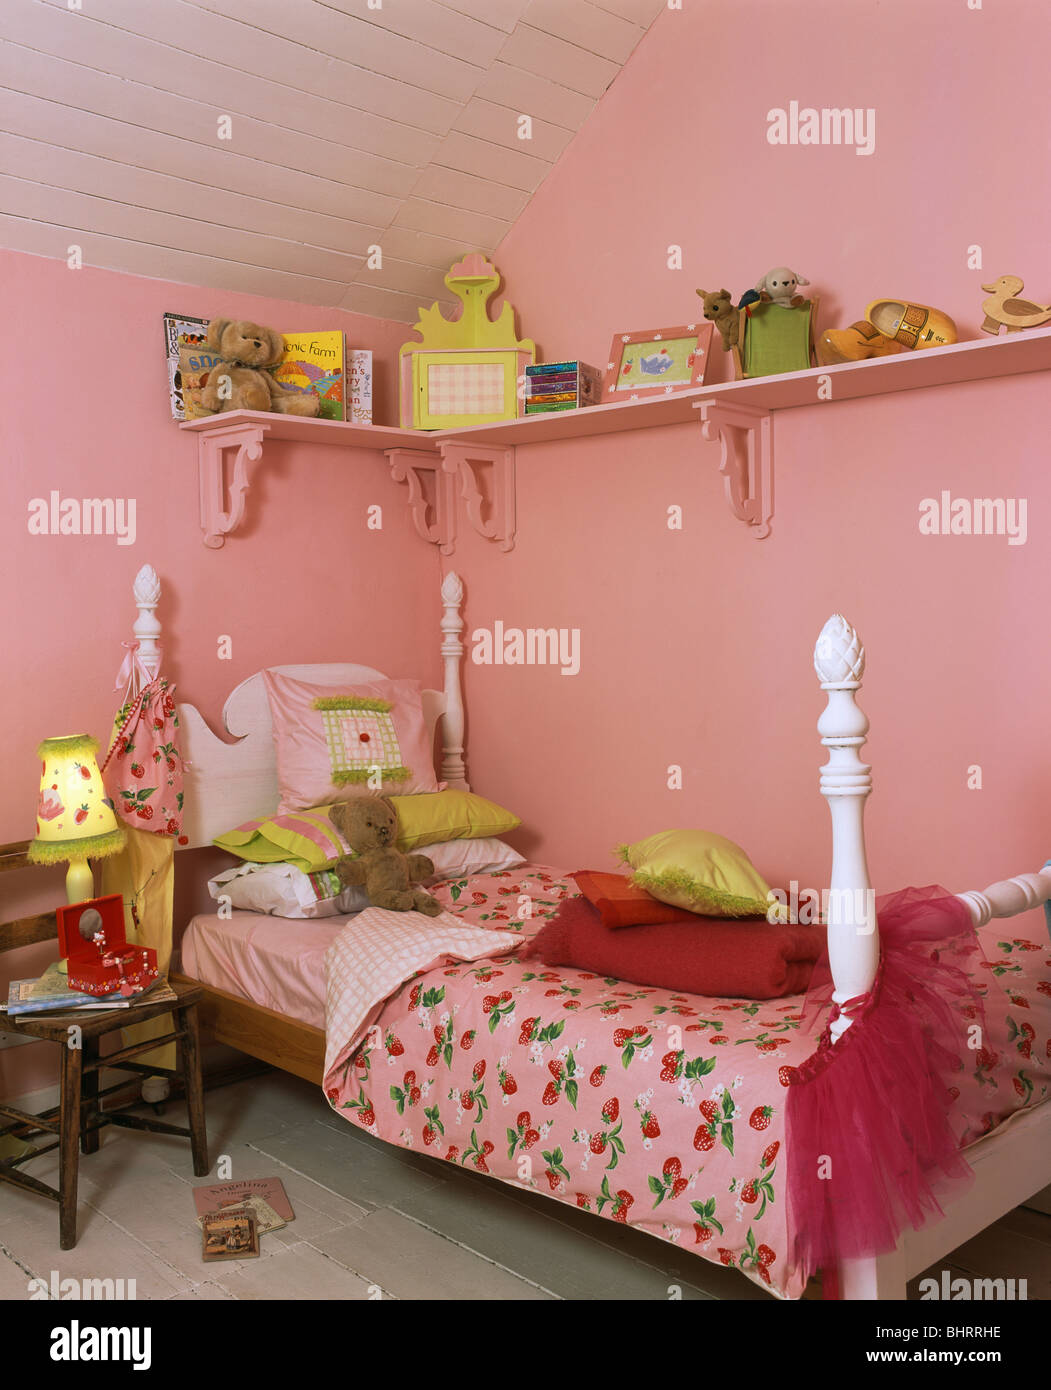 Toys On Pink Shelf Above Single Bed With Strawberry Print Bedlinen On Stock Photo Alamy